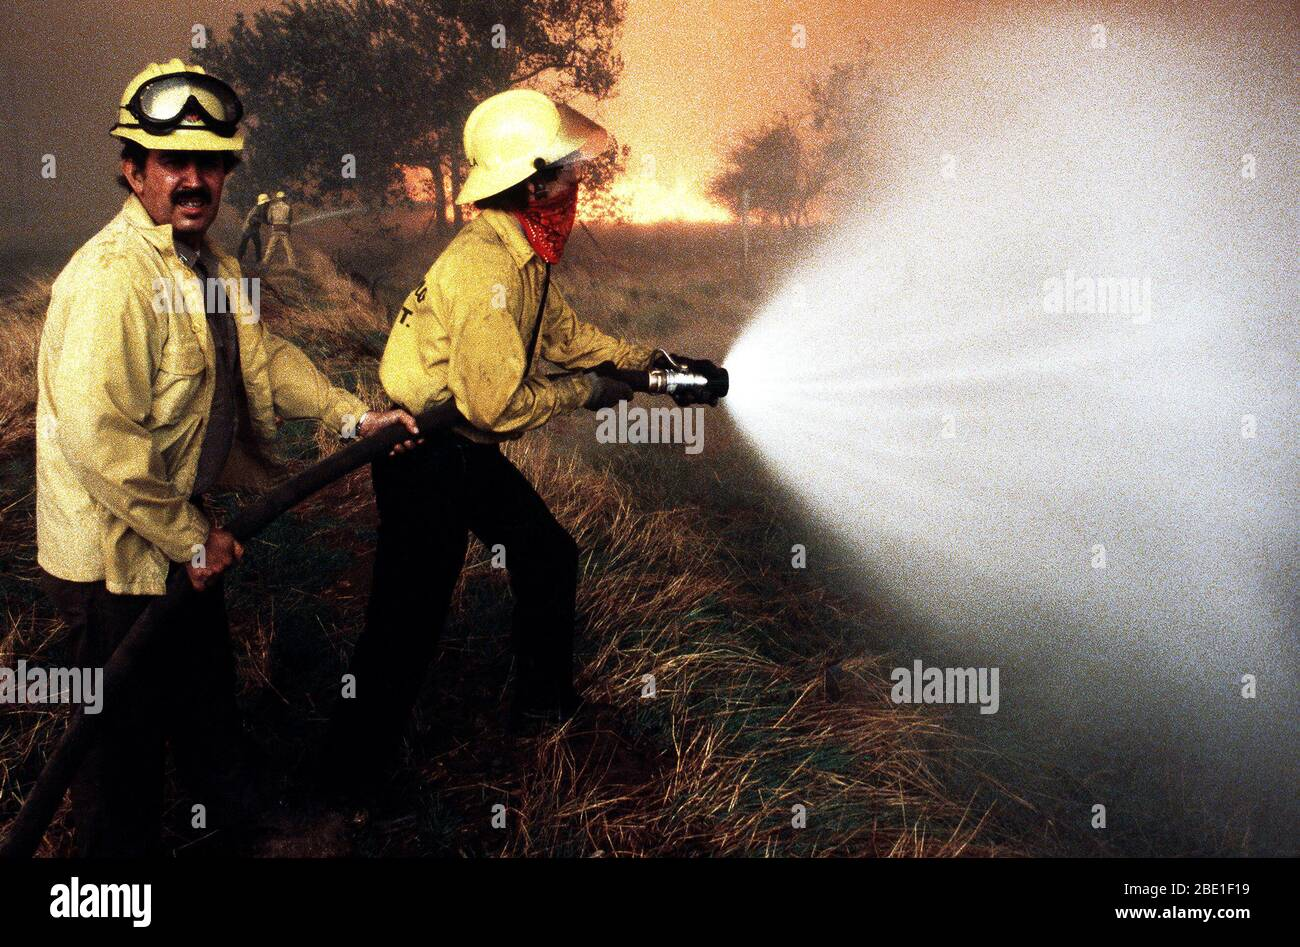 State firefighters spray water on wilderness fires with hoses during the four-day Panorama brush fire, which started in canyons north of town and has been whipped out of control by 40-50 mph winds. Stock Photo